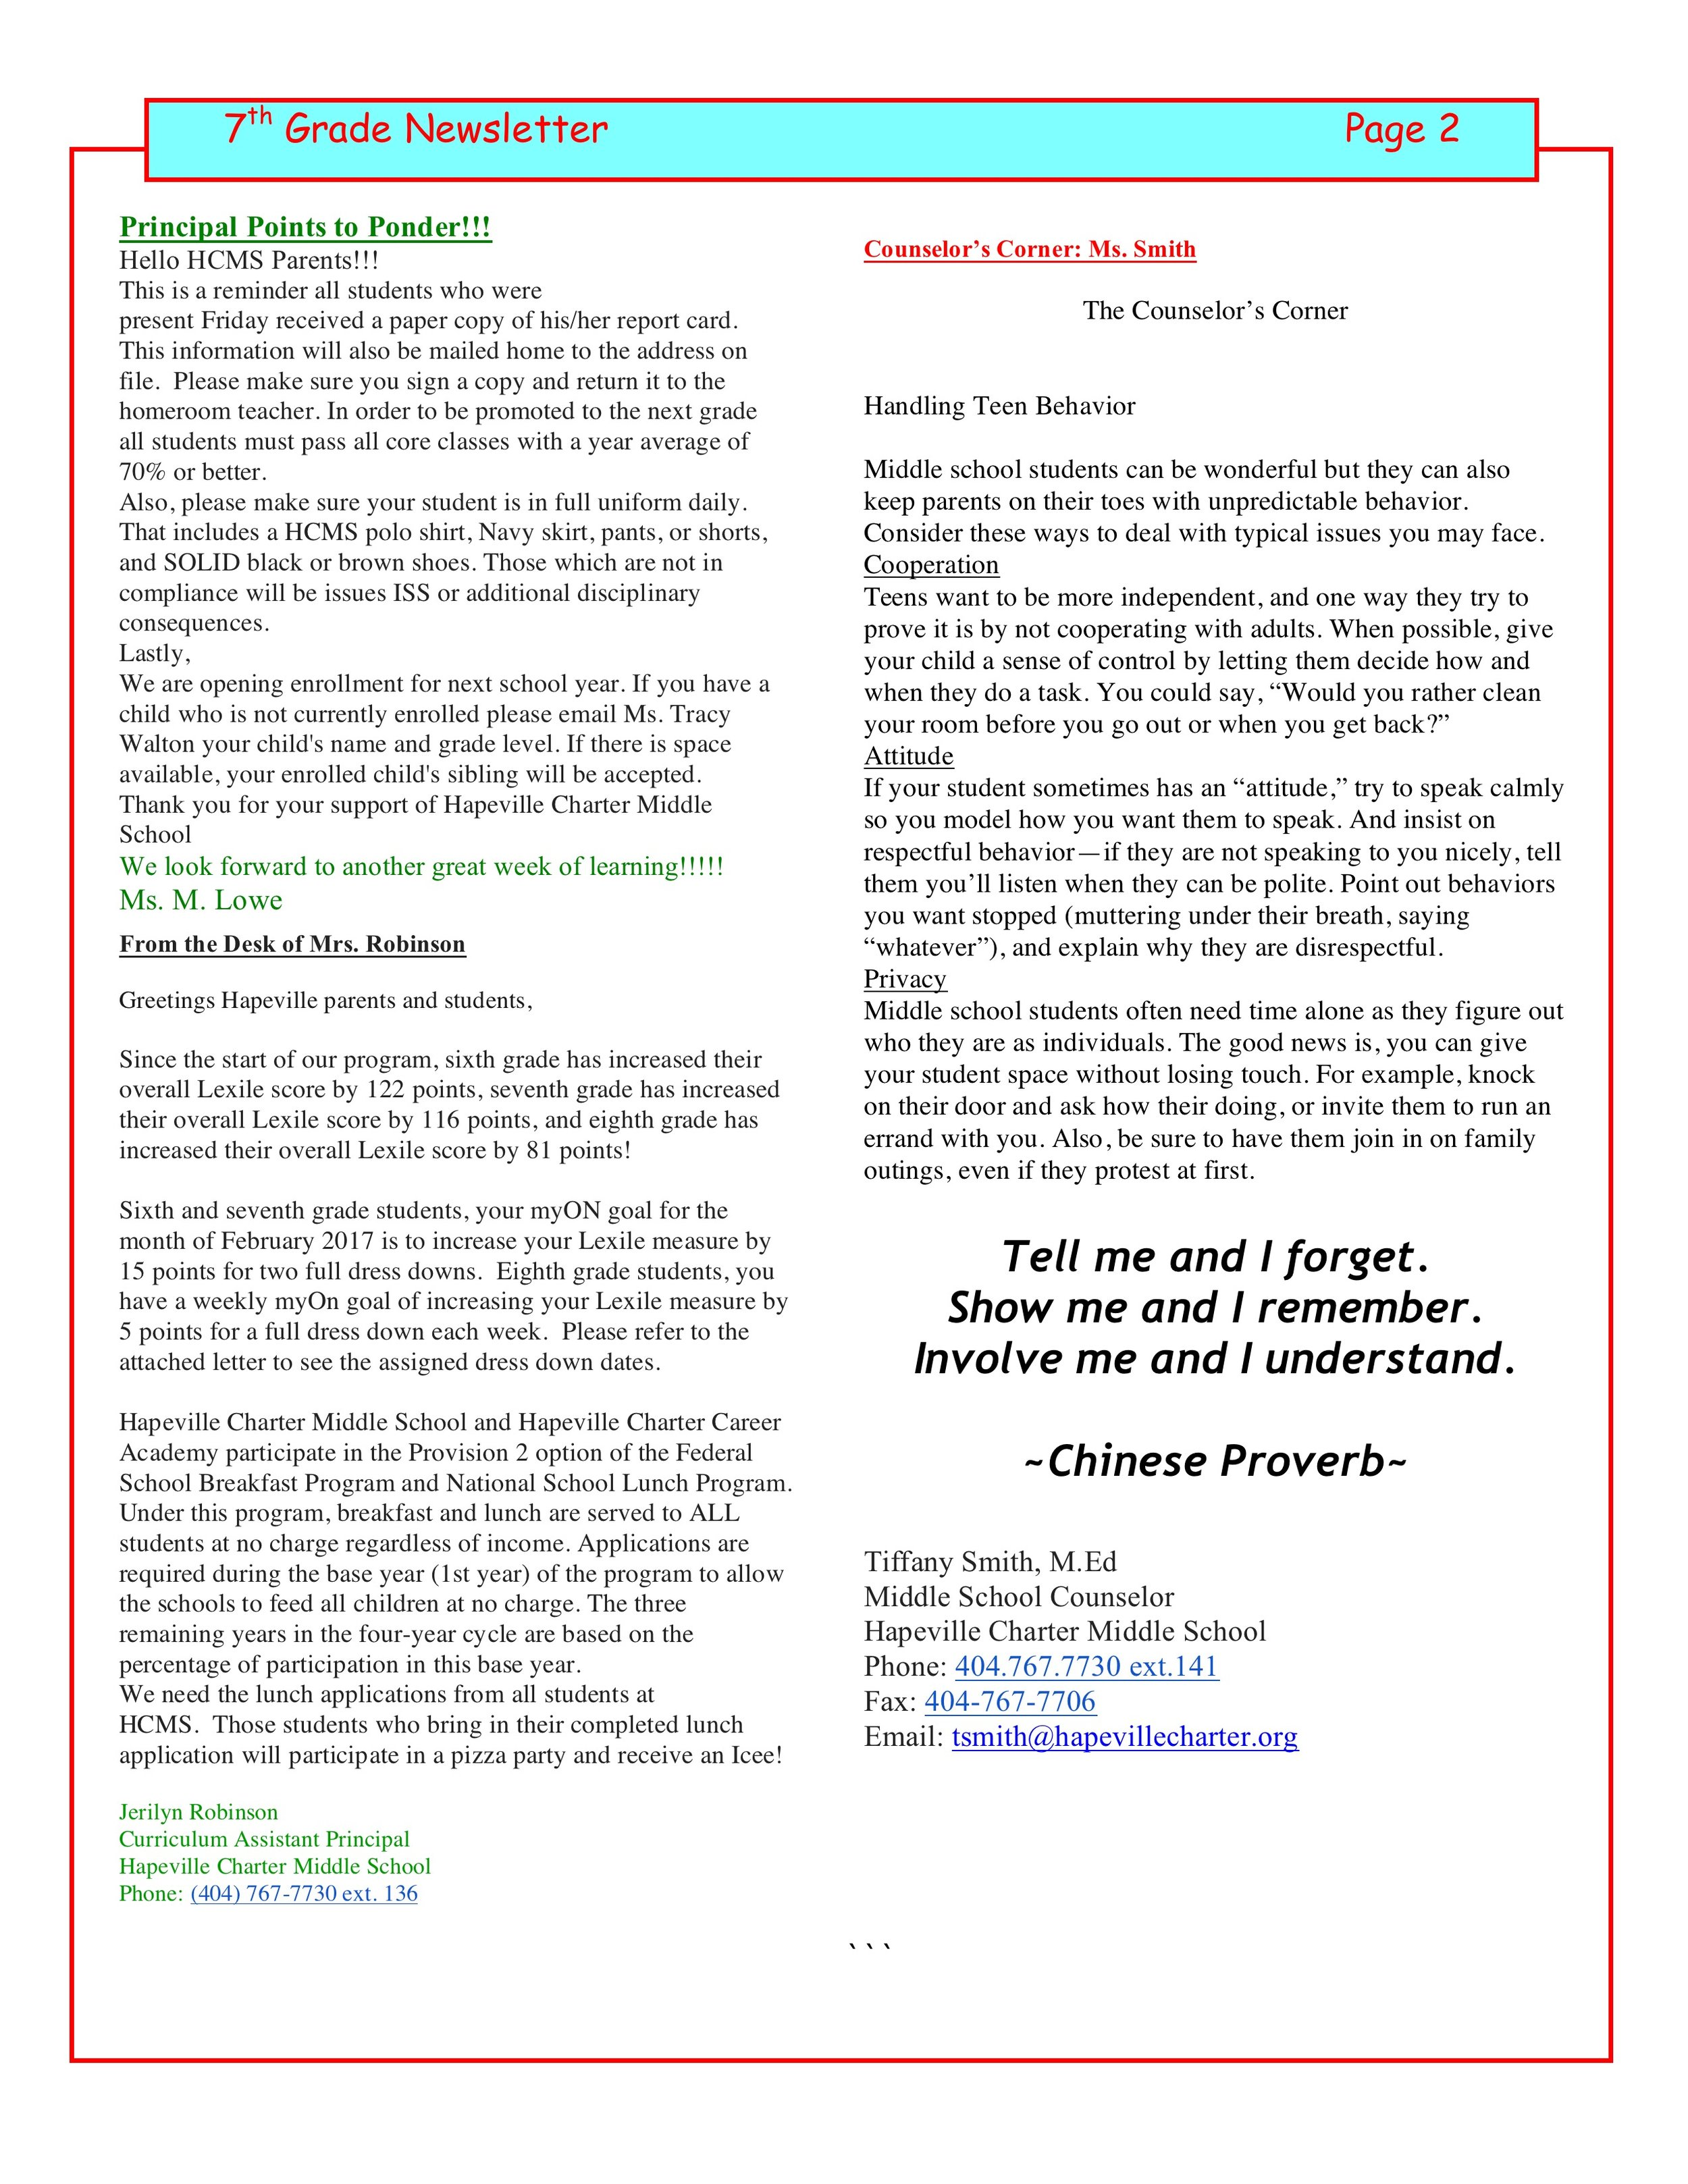 Newsletter Image7th Grade Newsletter 2-14  2.jpeg